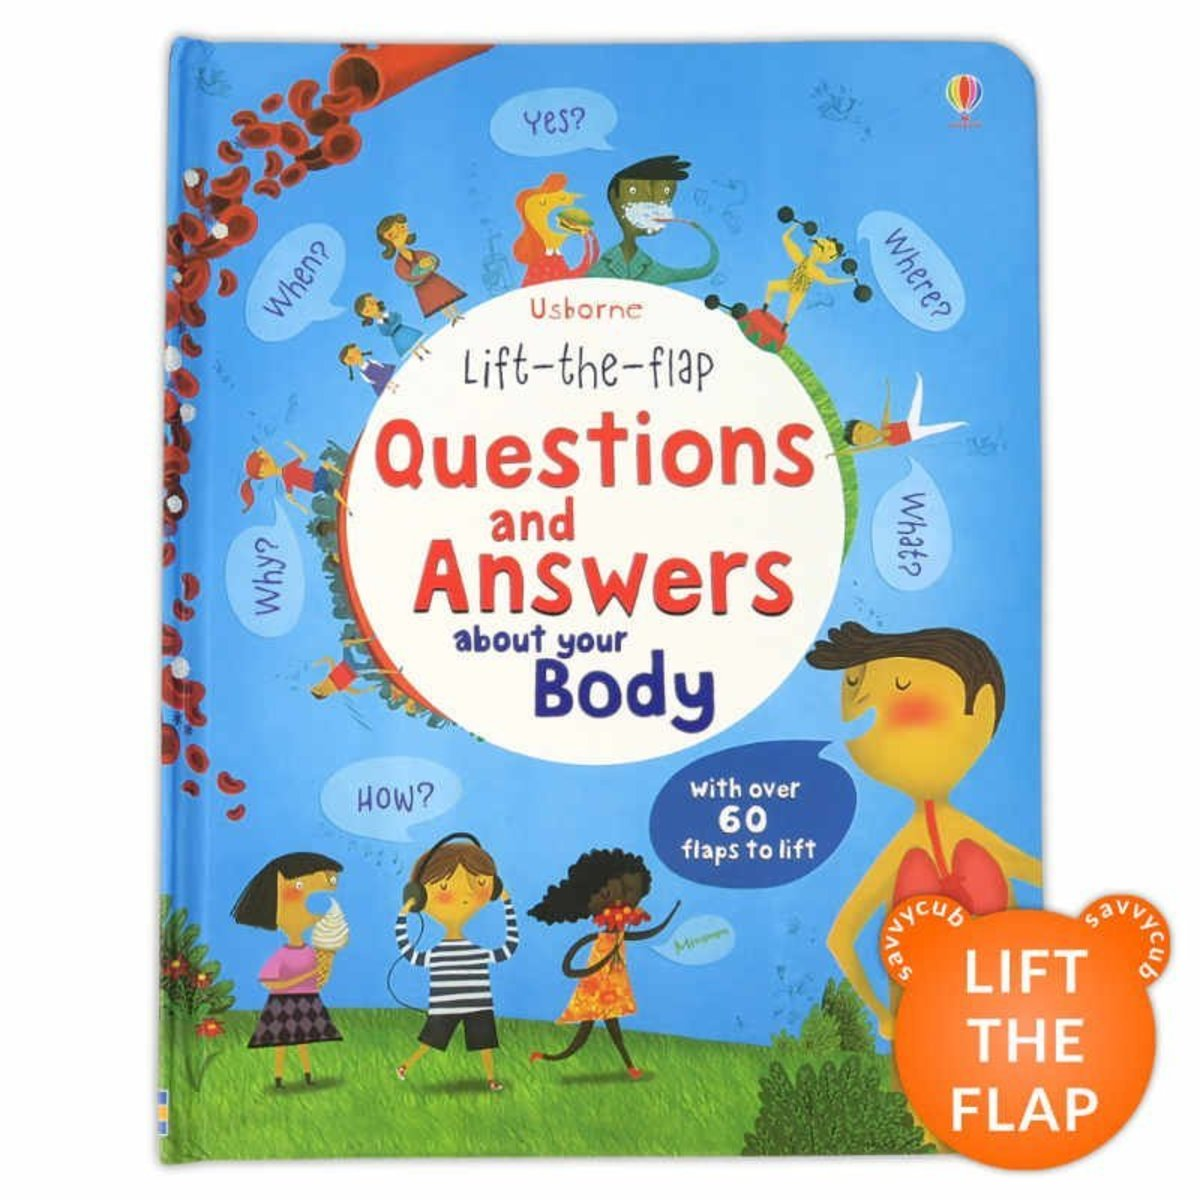 Lift the Flap Questions and Answers about your Body|Parallel Imports